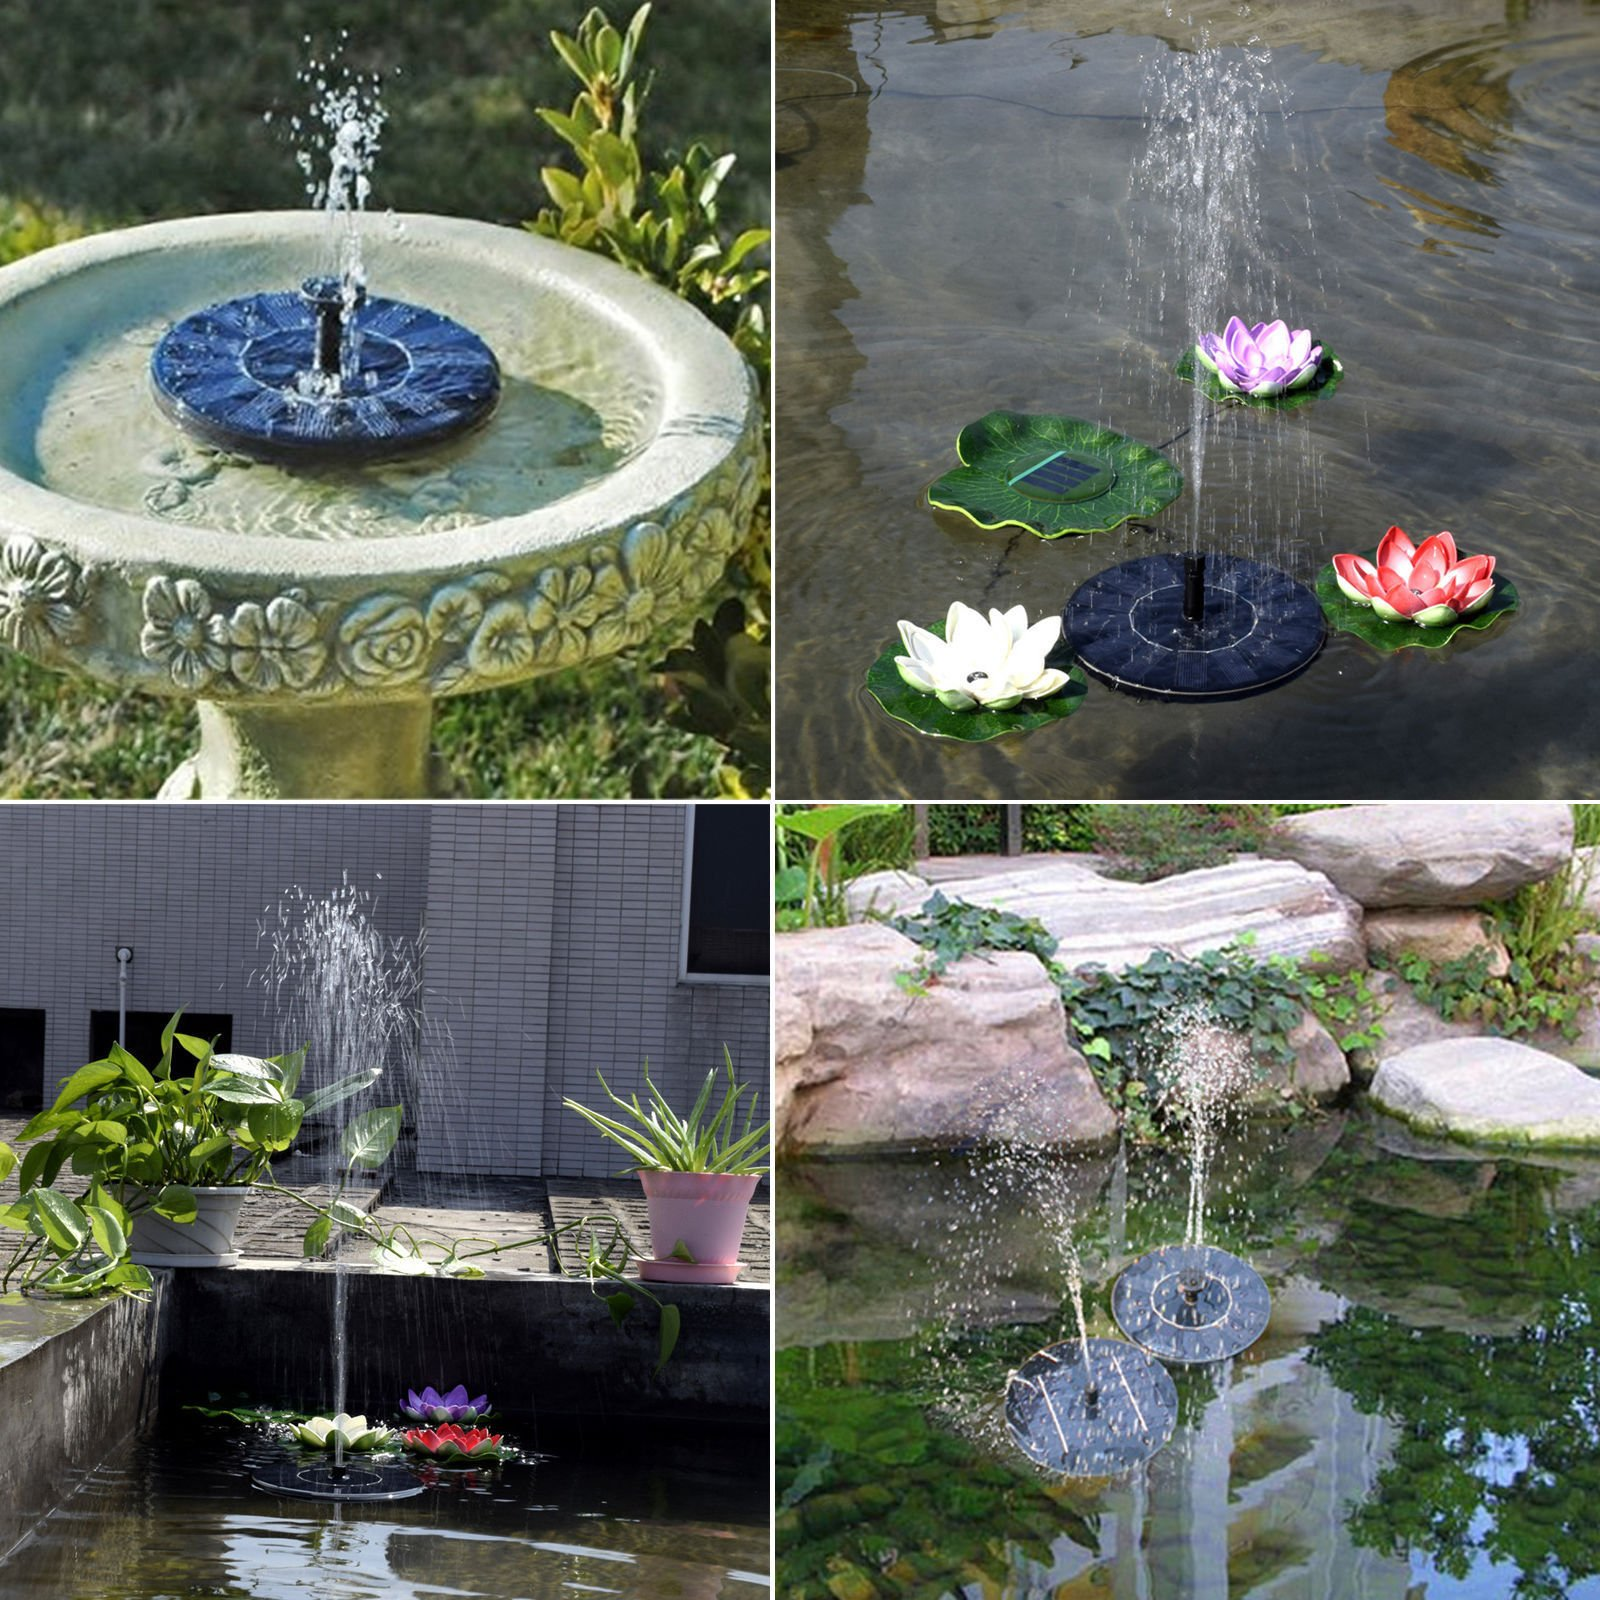 Eco Friendly Solar Power Water Pump Novelty Fountain Birdbath Outdoor Garden Plant Watering Auto Operate for Home Patio Pool Fish Pond Decoration Idea Gift etc.